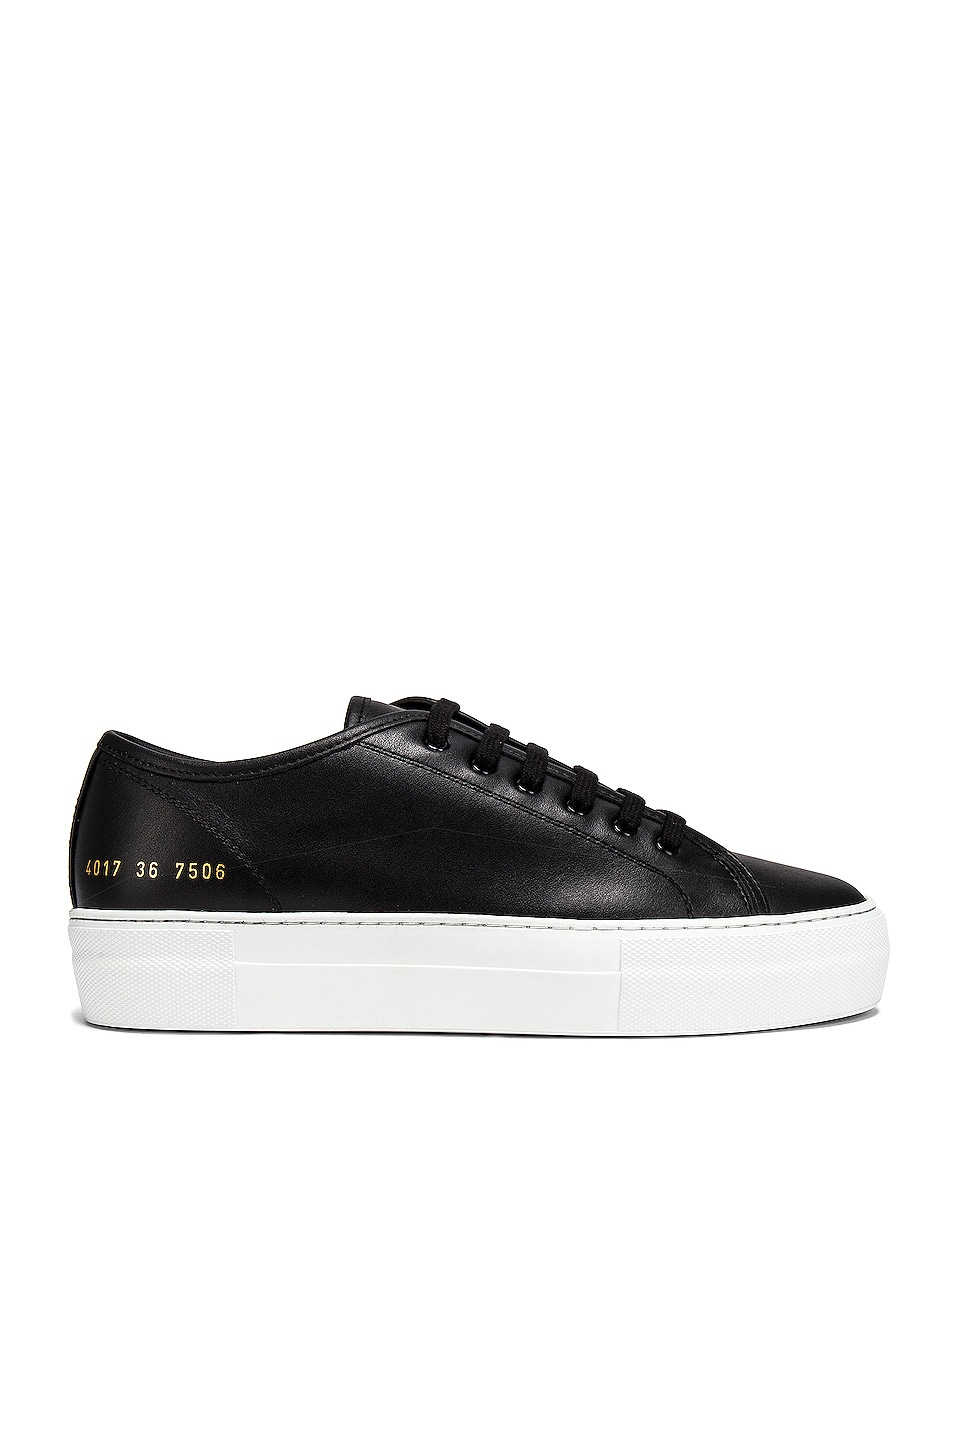 Common Projects Tournament Low Platform Super Sneaker in Black & White